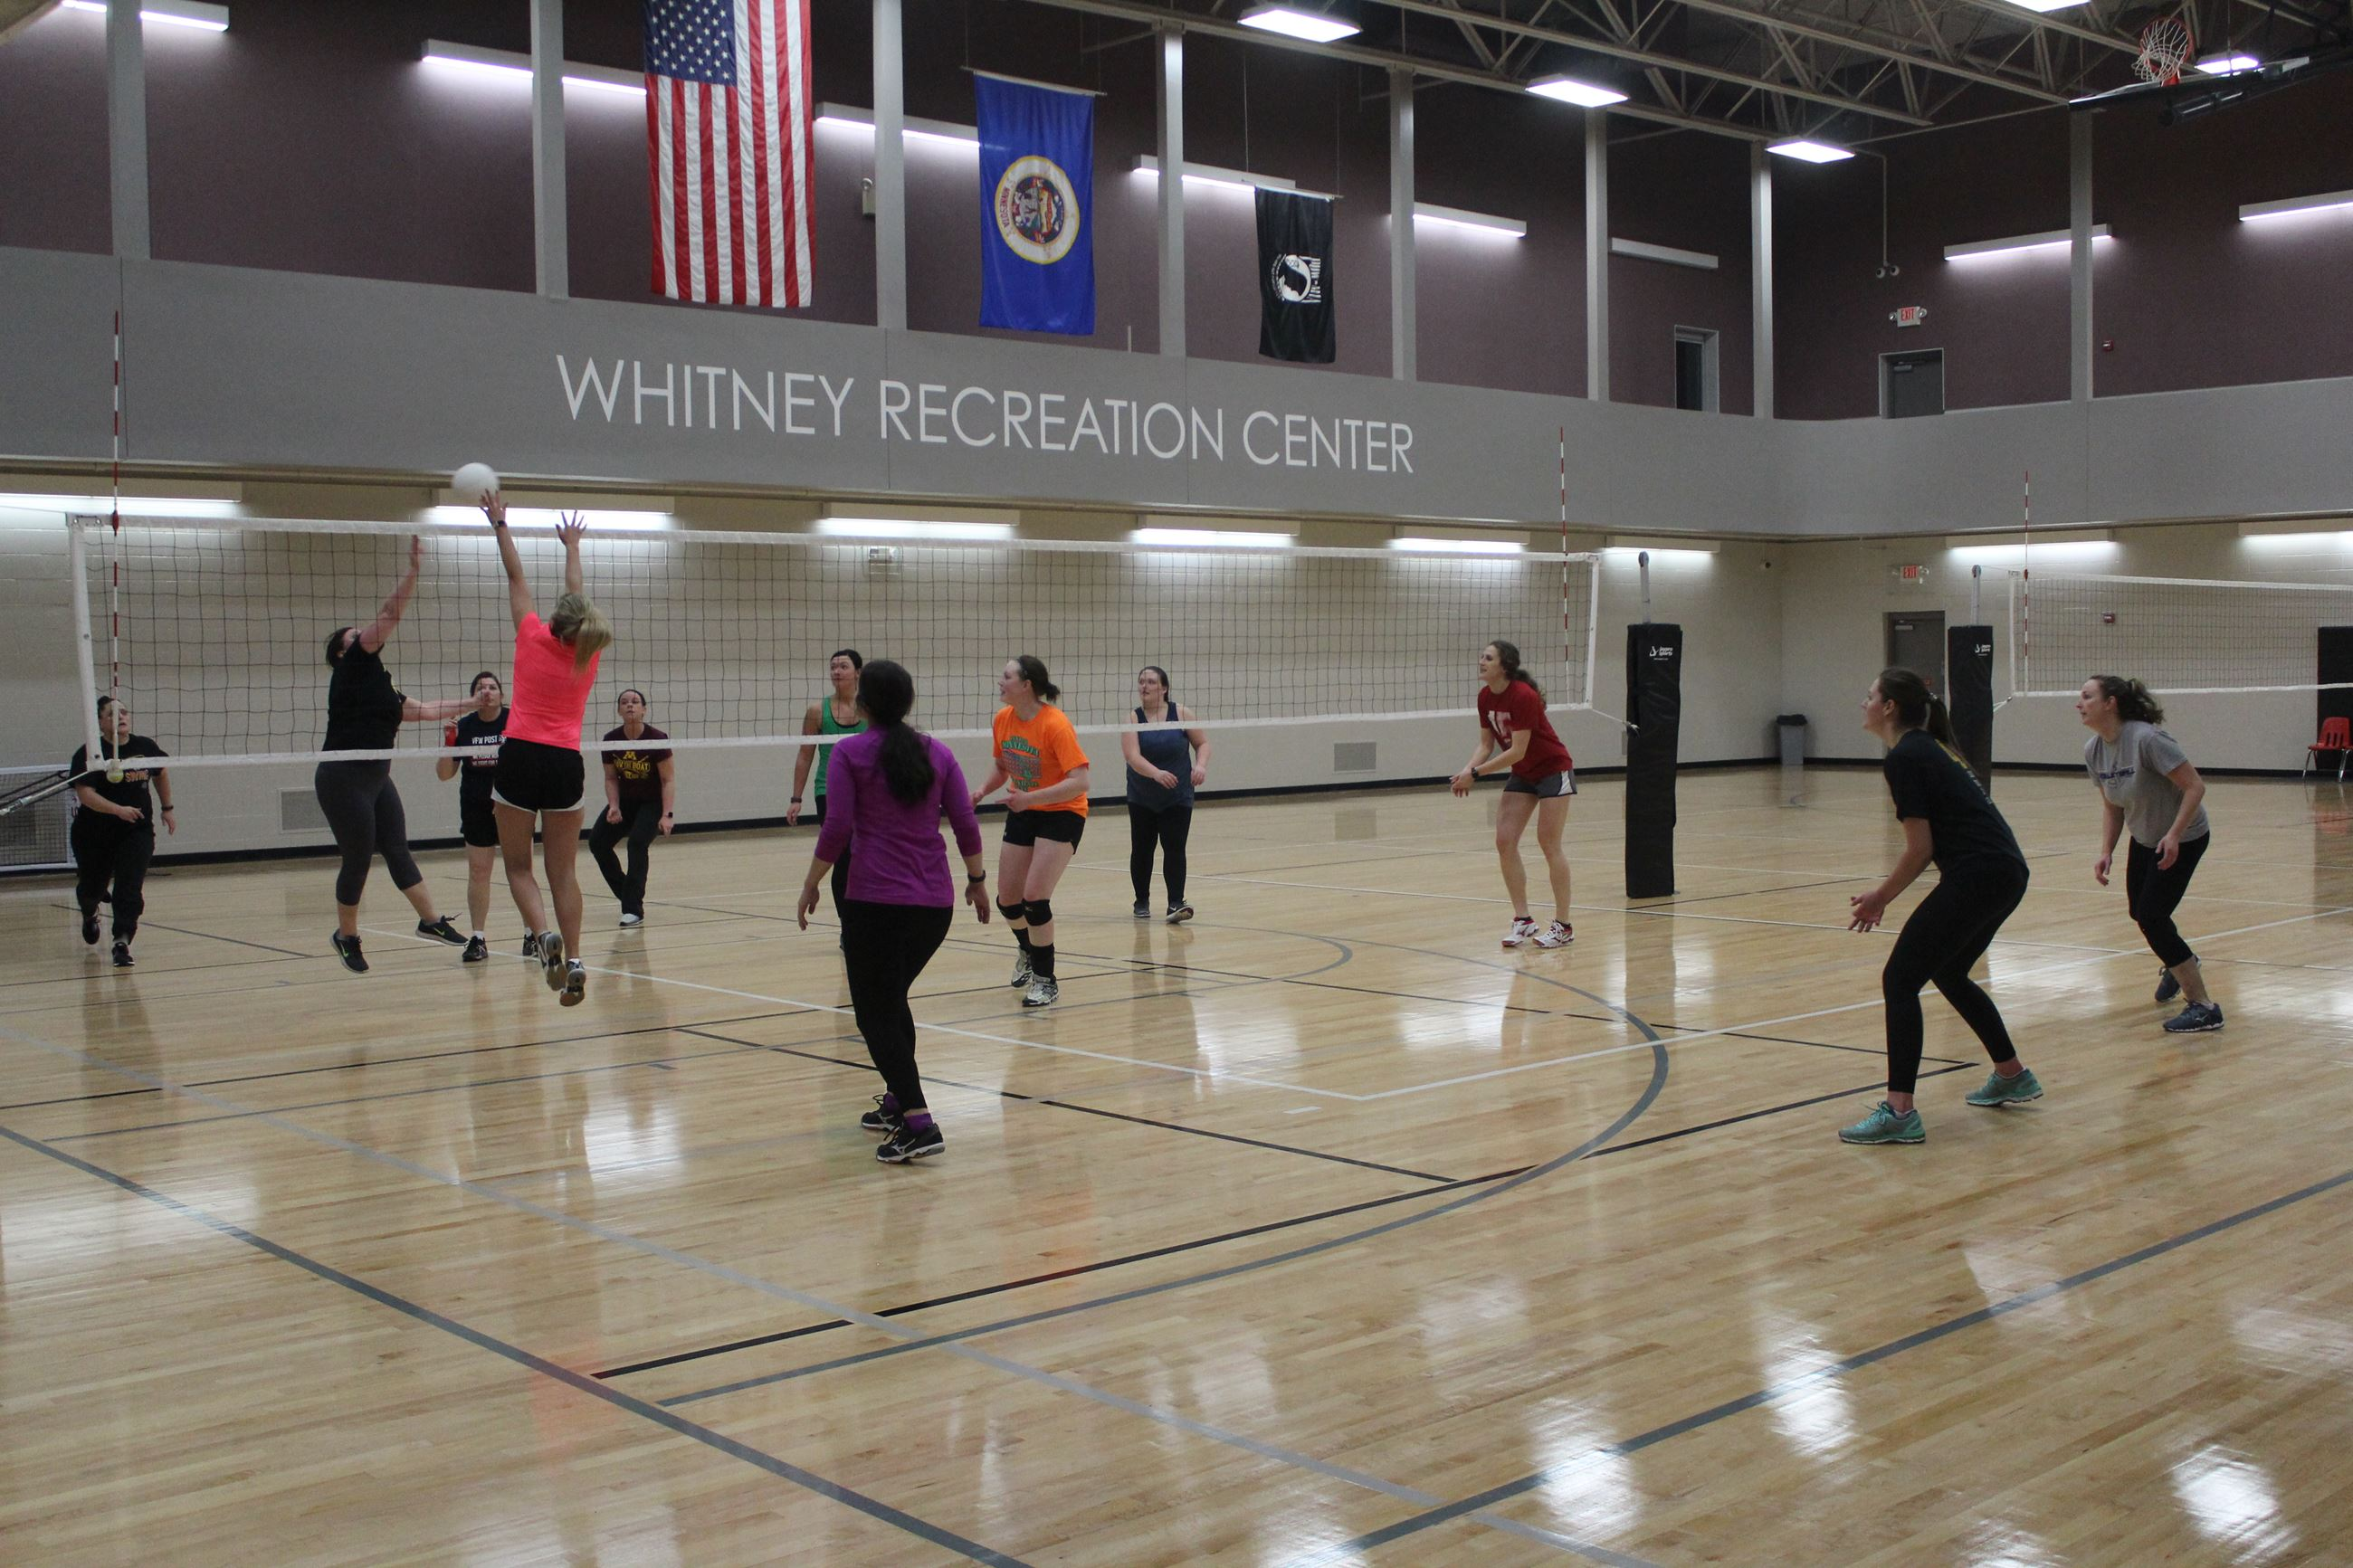 Volleyball game being played by two women's teams at the Whitney Recreation Center